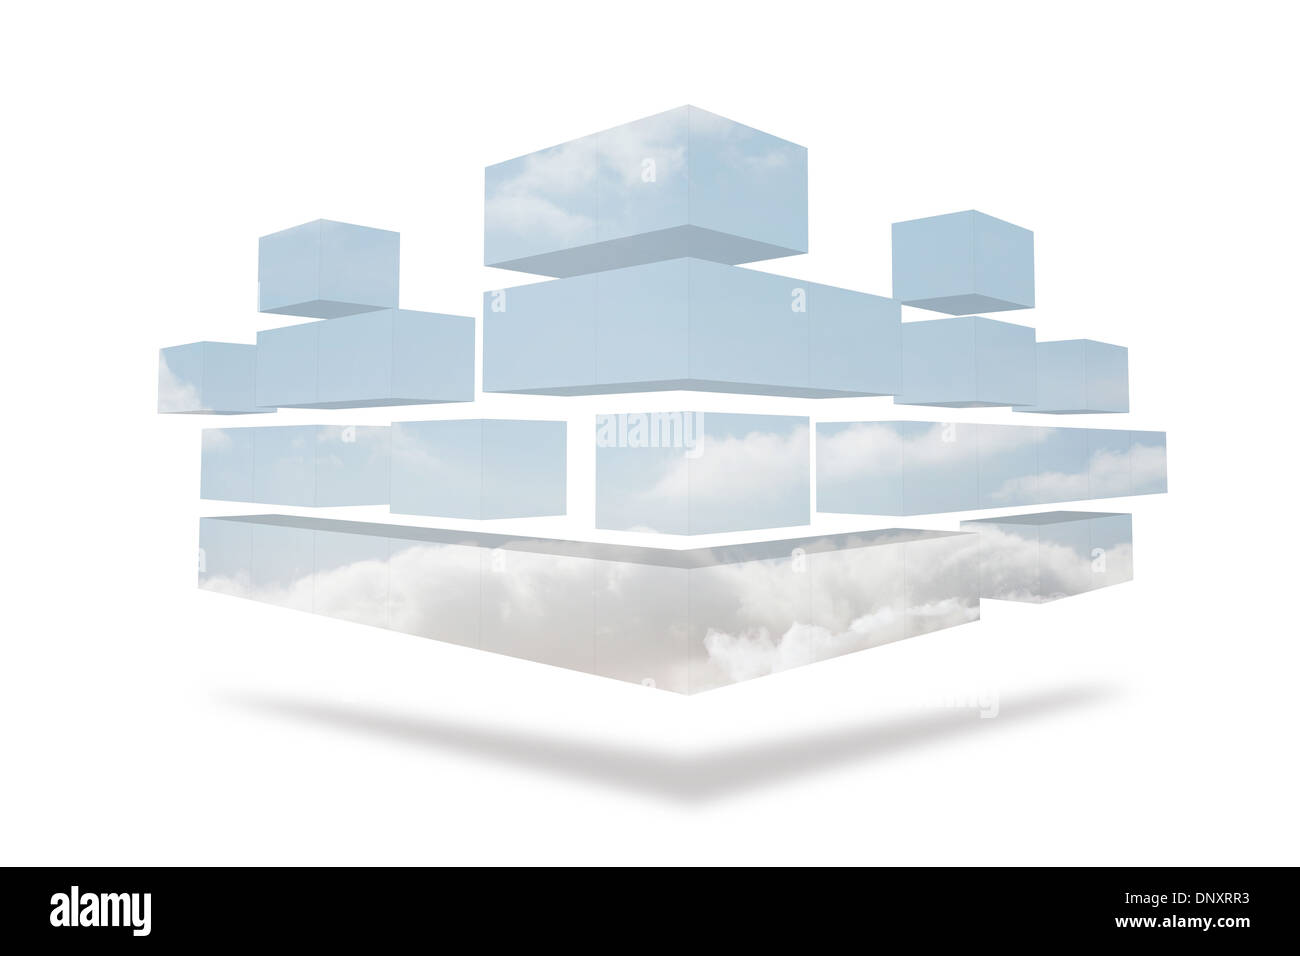 Structures showing sky - Stock Image